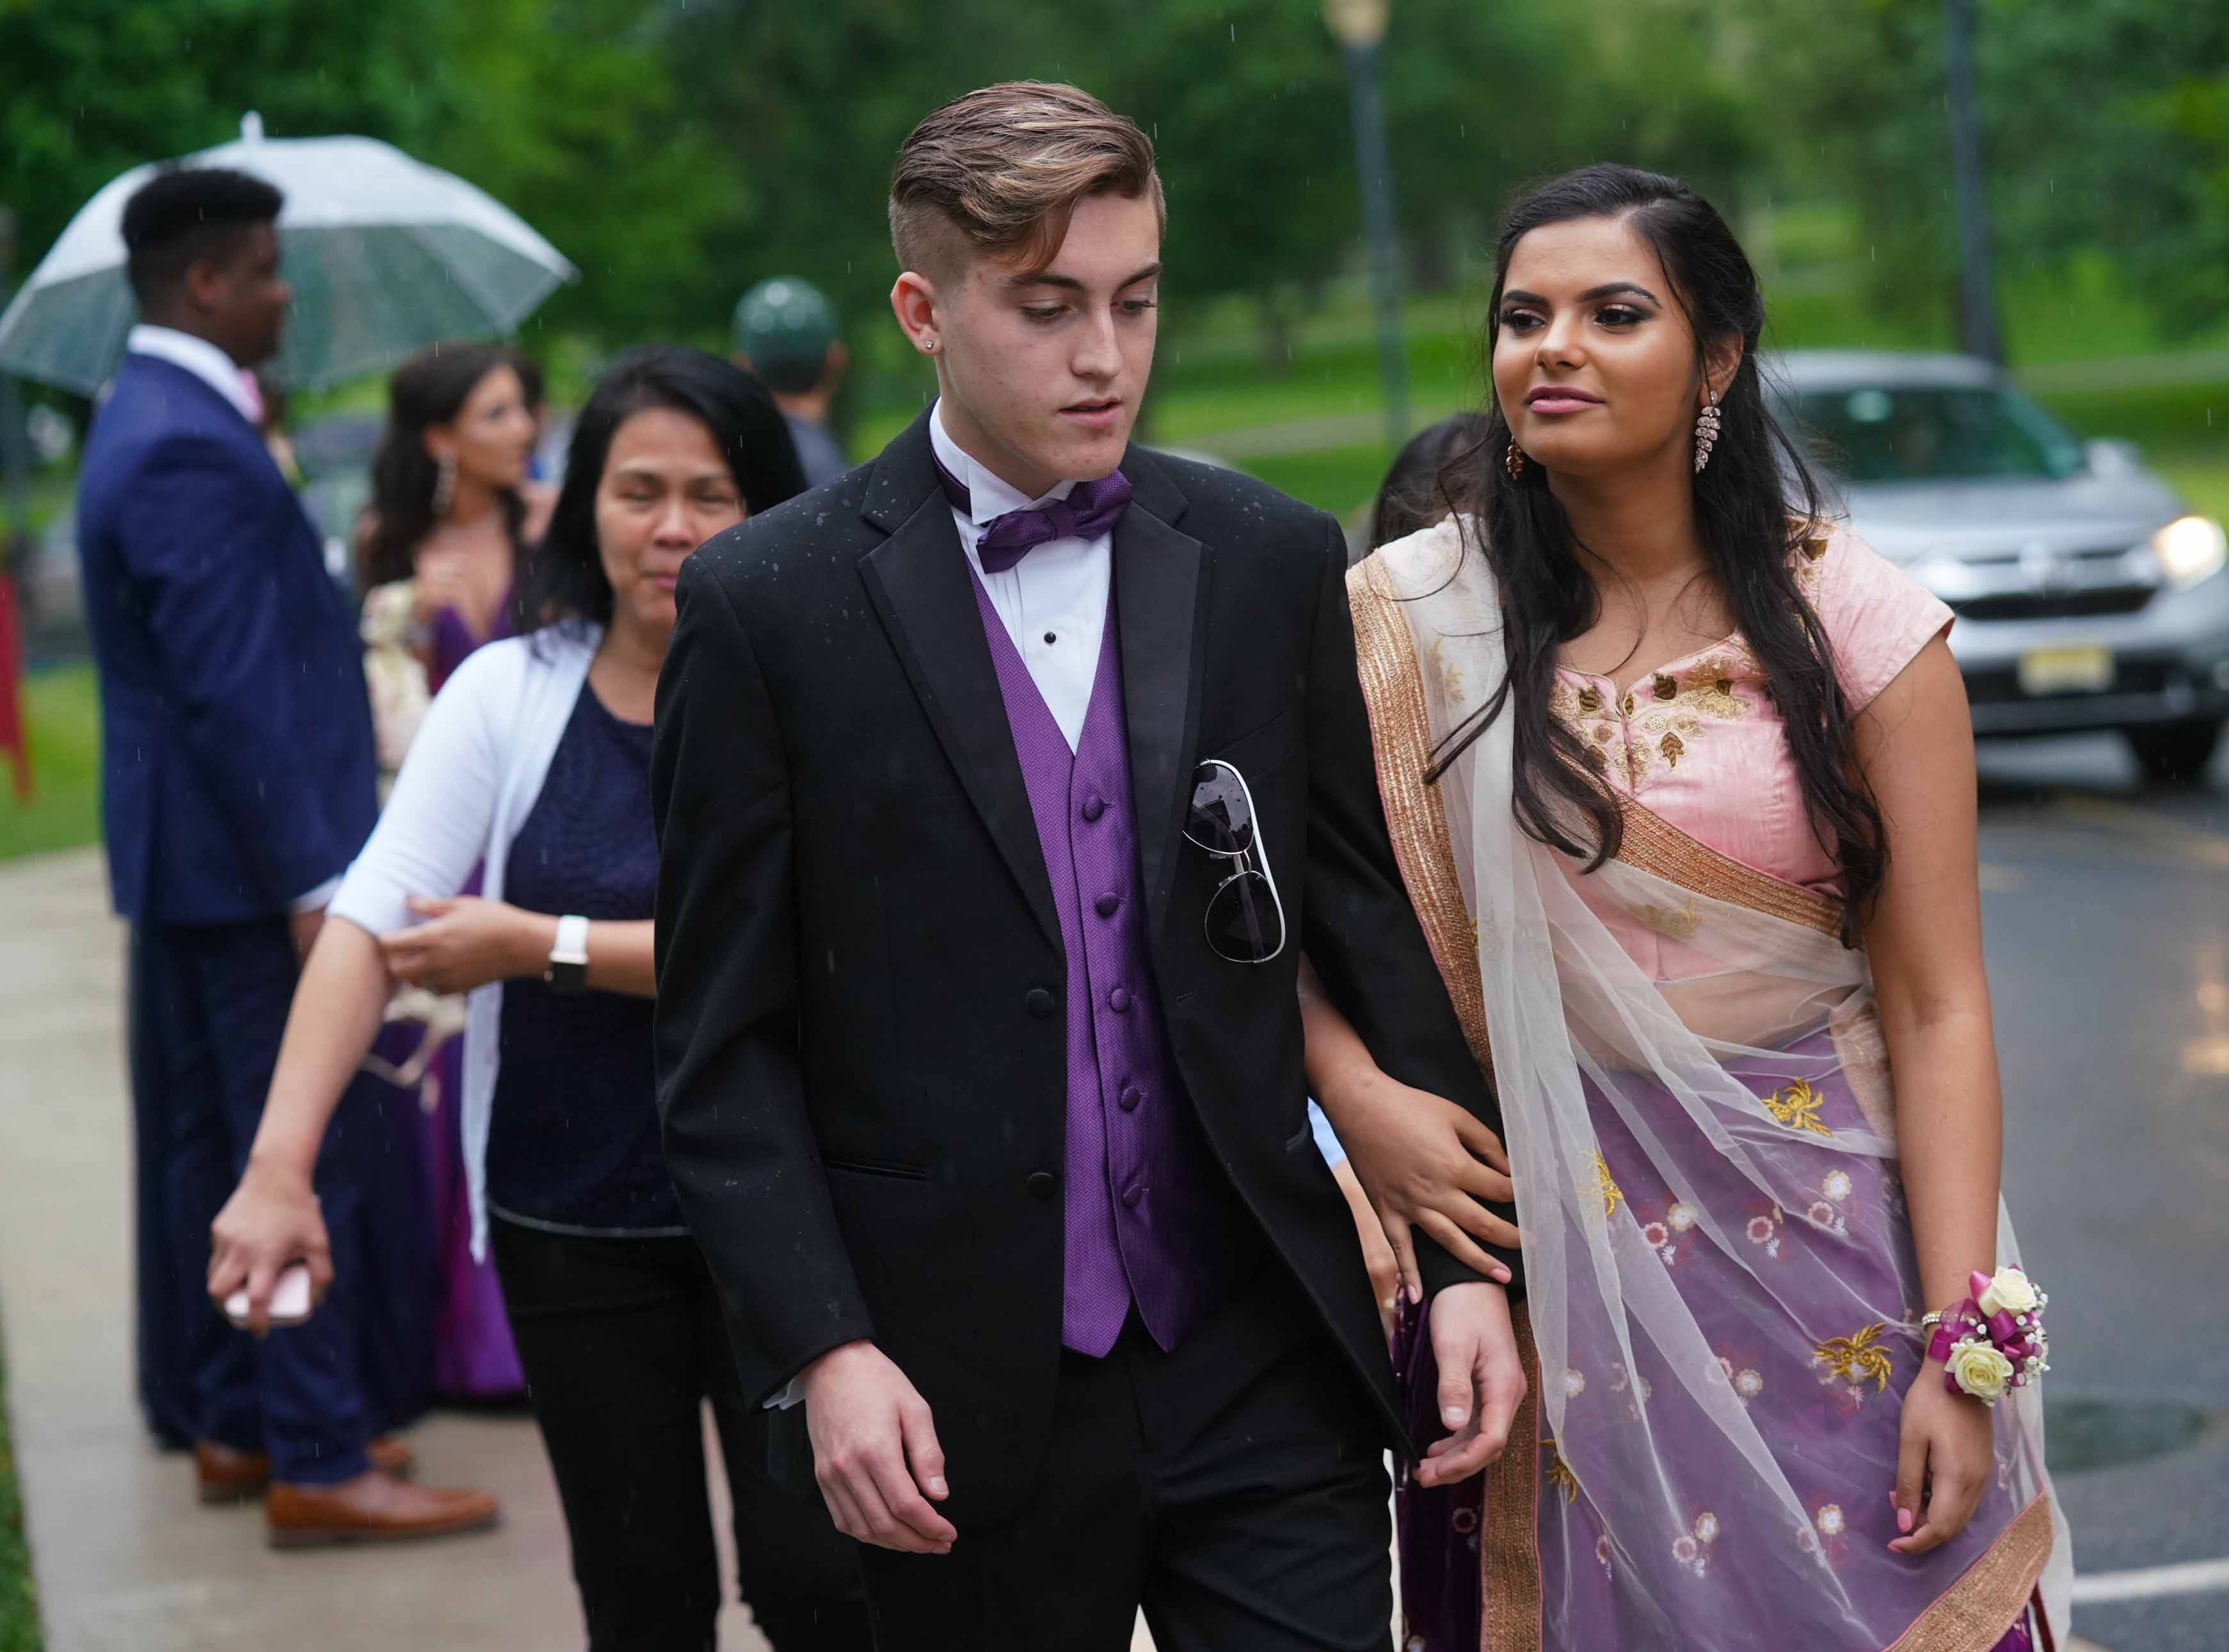 Students and guests from MOT Charter High School in Middletown arrive at Deerfield Country Club for the school's prom, Friday, May 10, 2019.